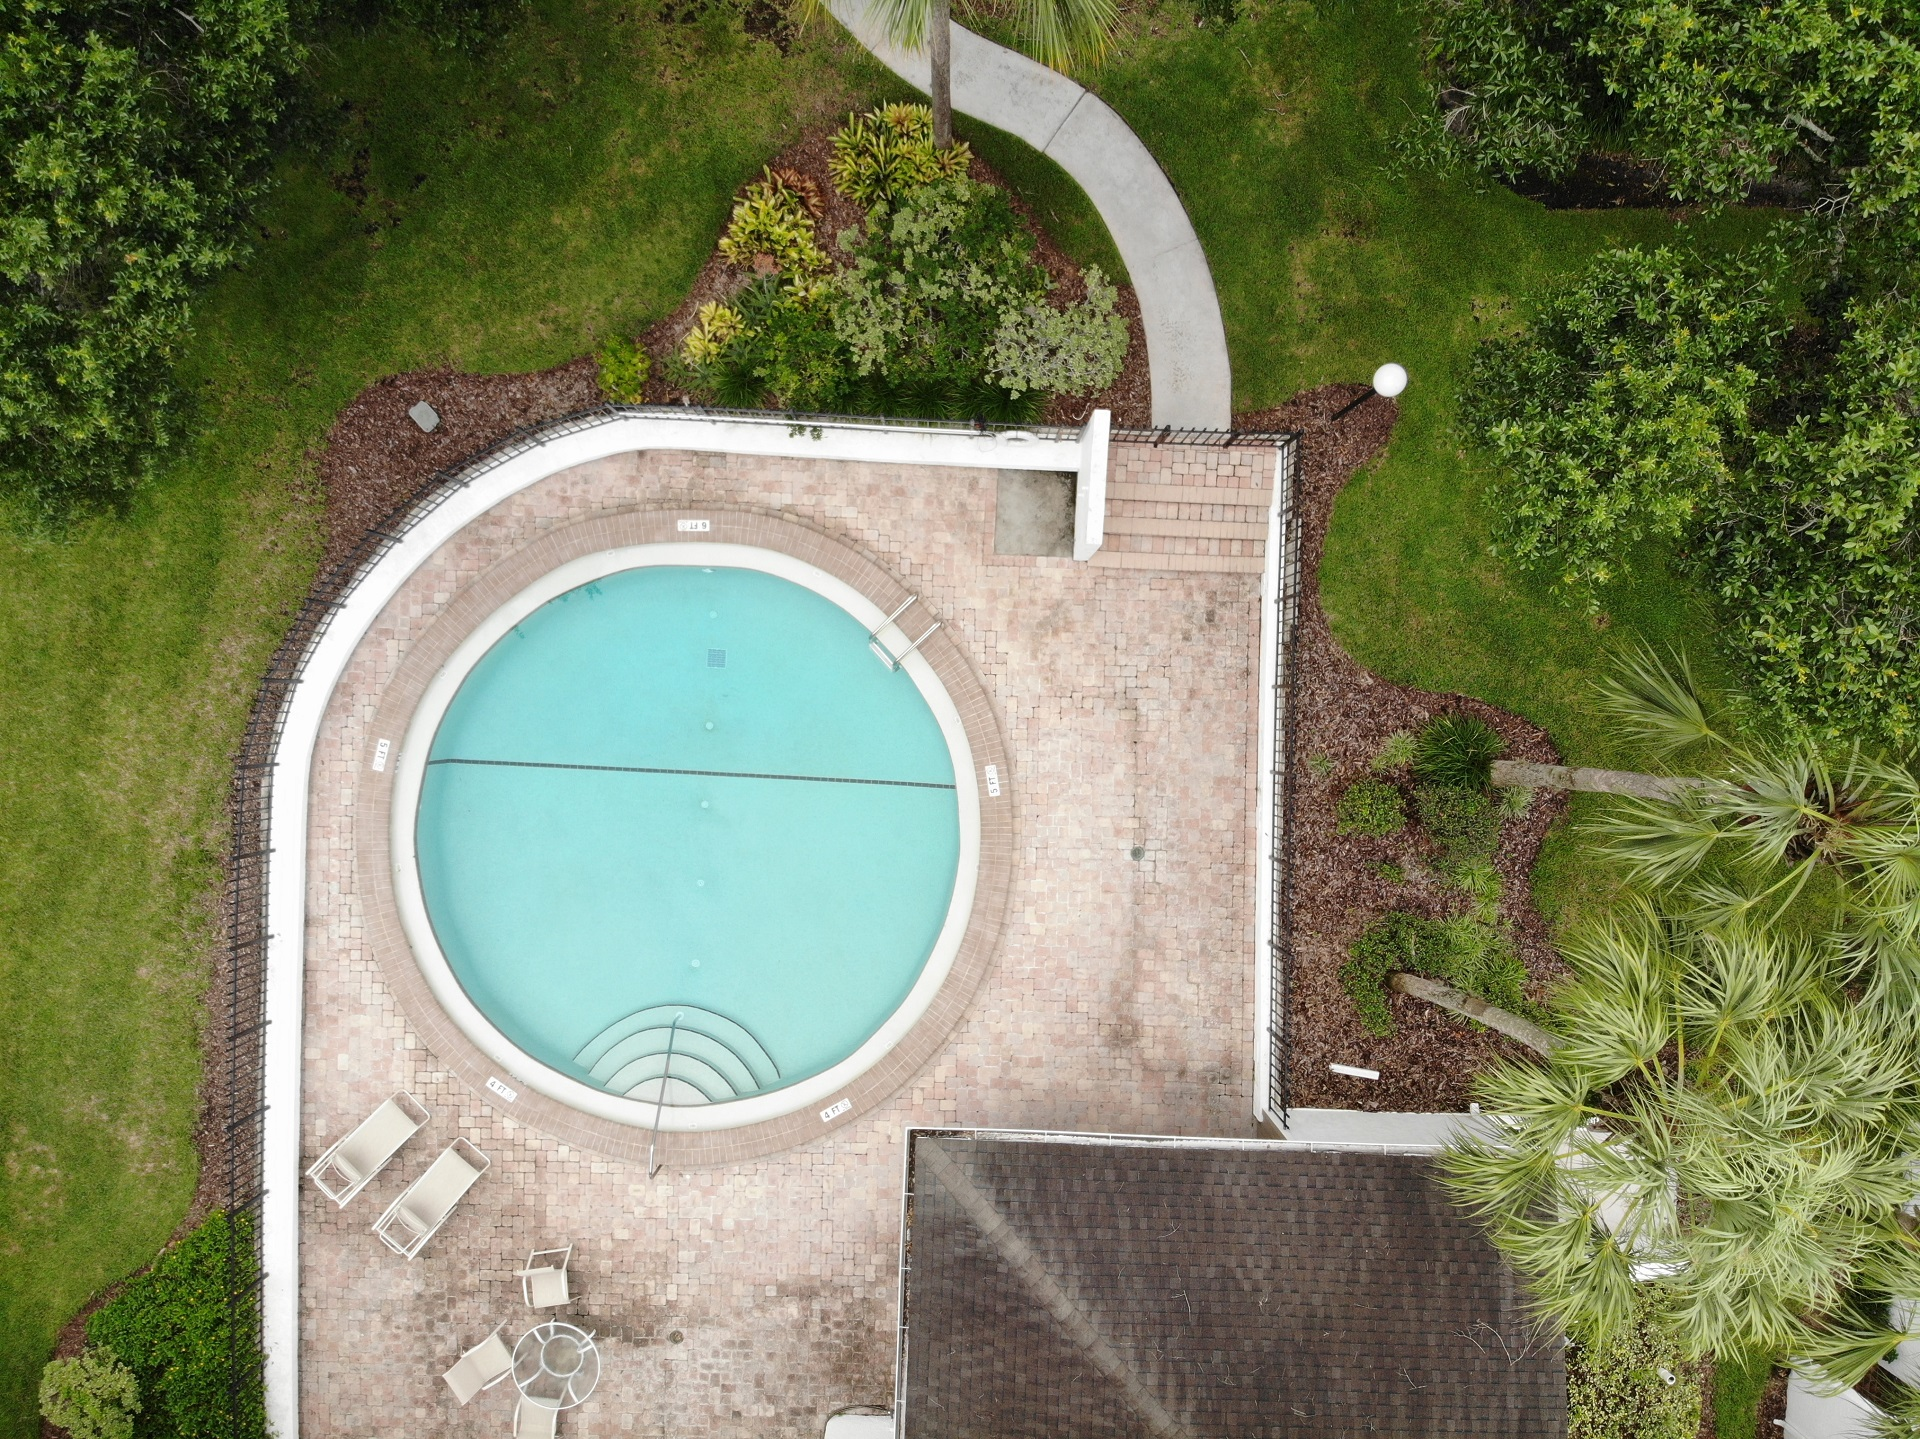 round pool aerial view